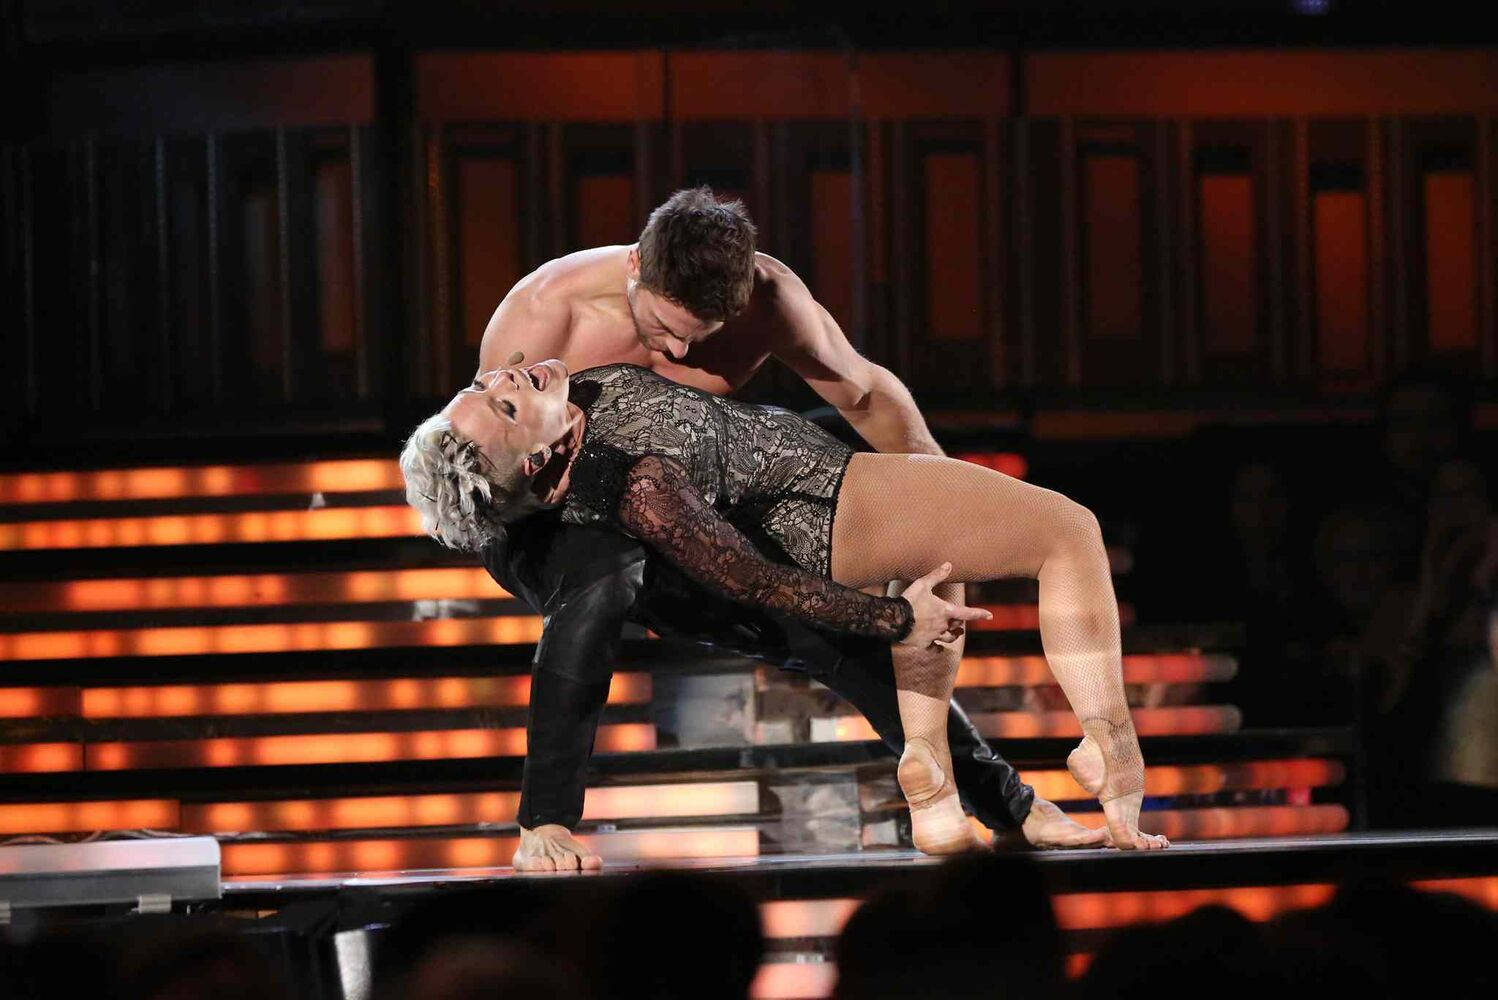 Pink performs Try at the 56th annual Grammy Awards. (Matt Sayles / The Associated Press)